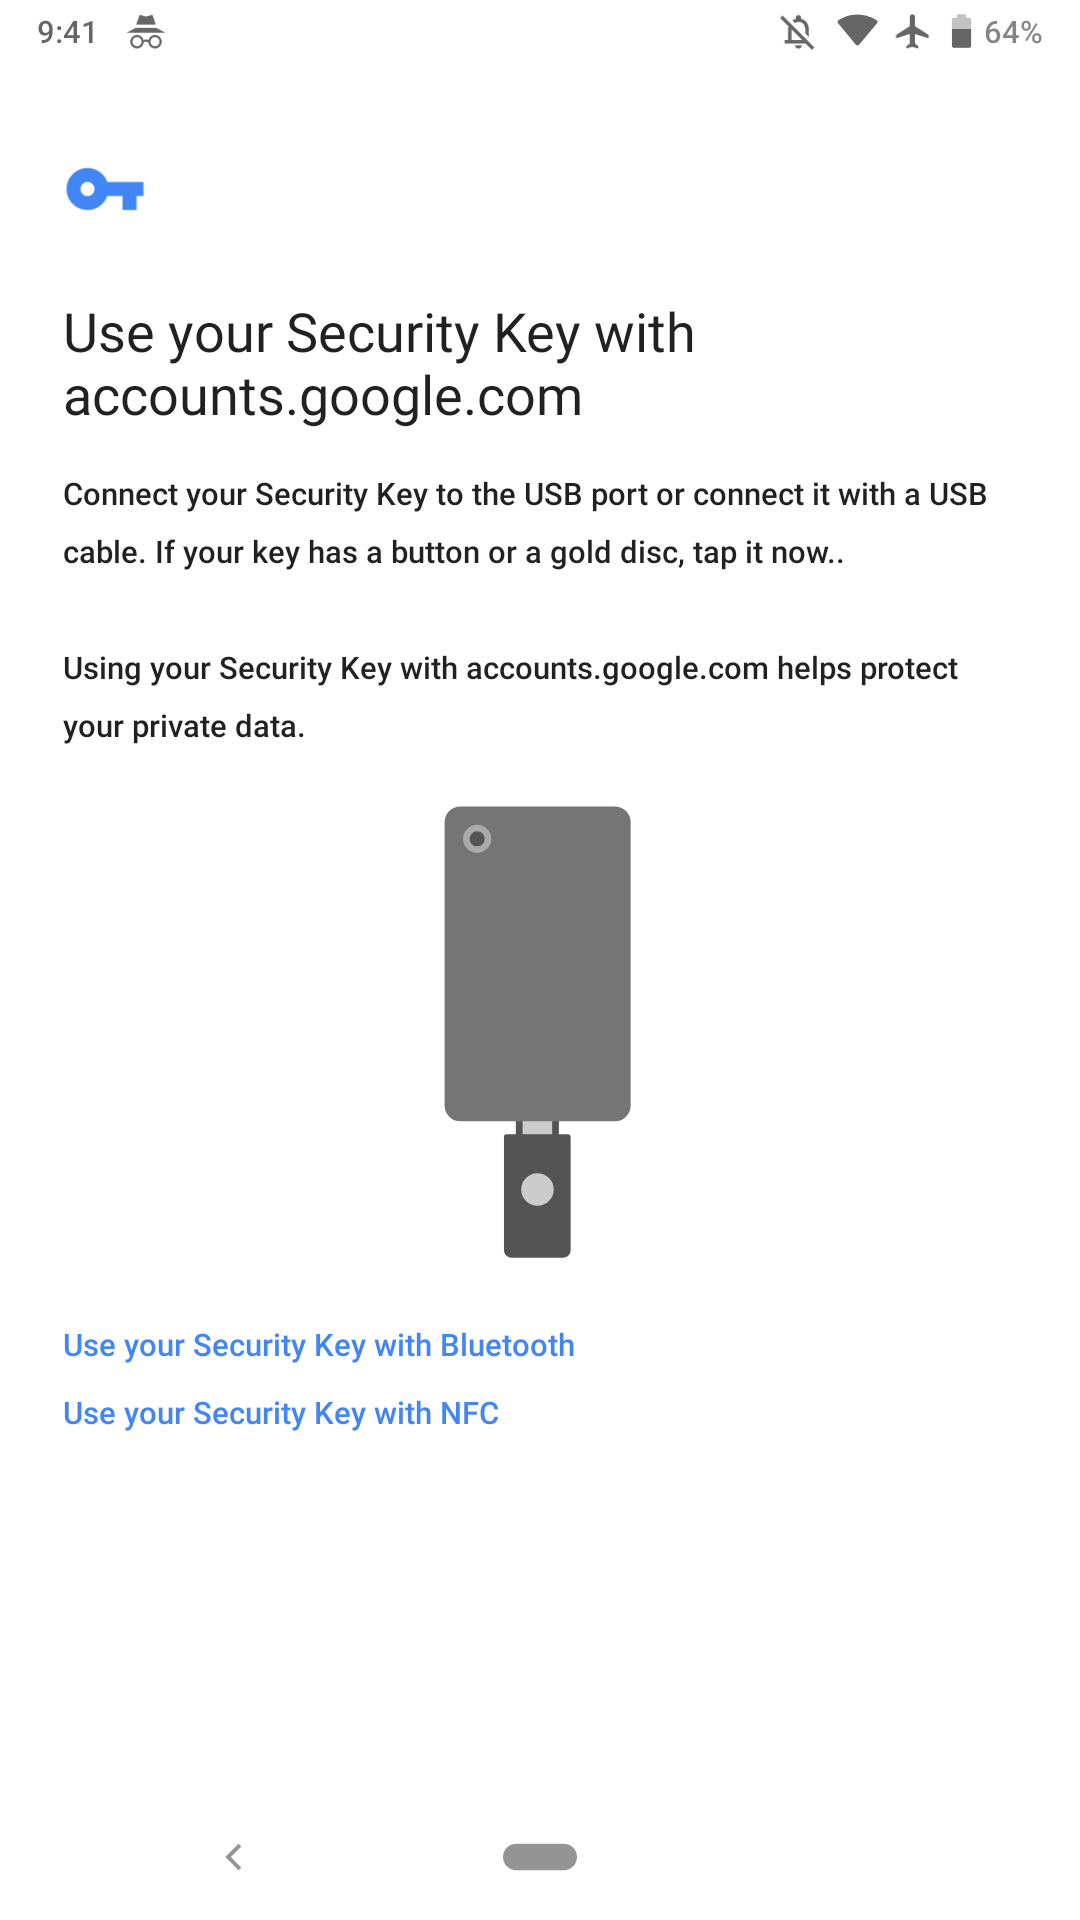 Review: While not for everyone, Google's Titan Security Key